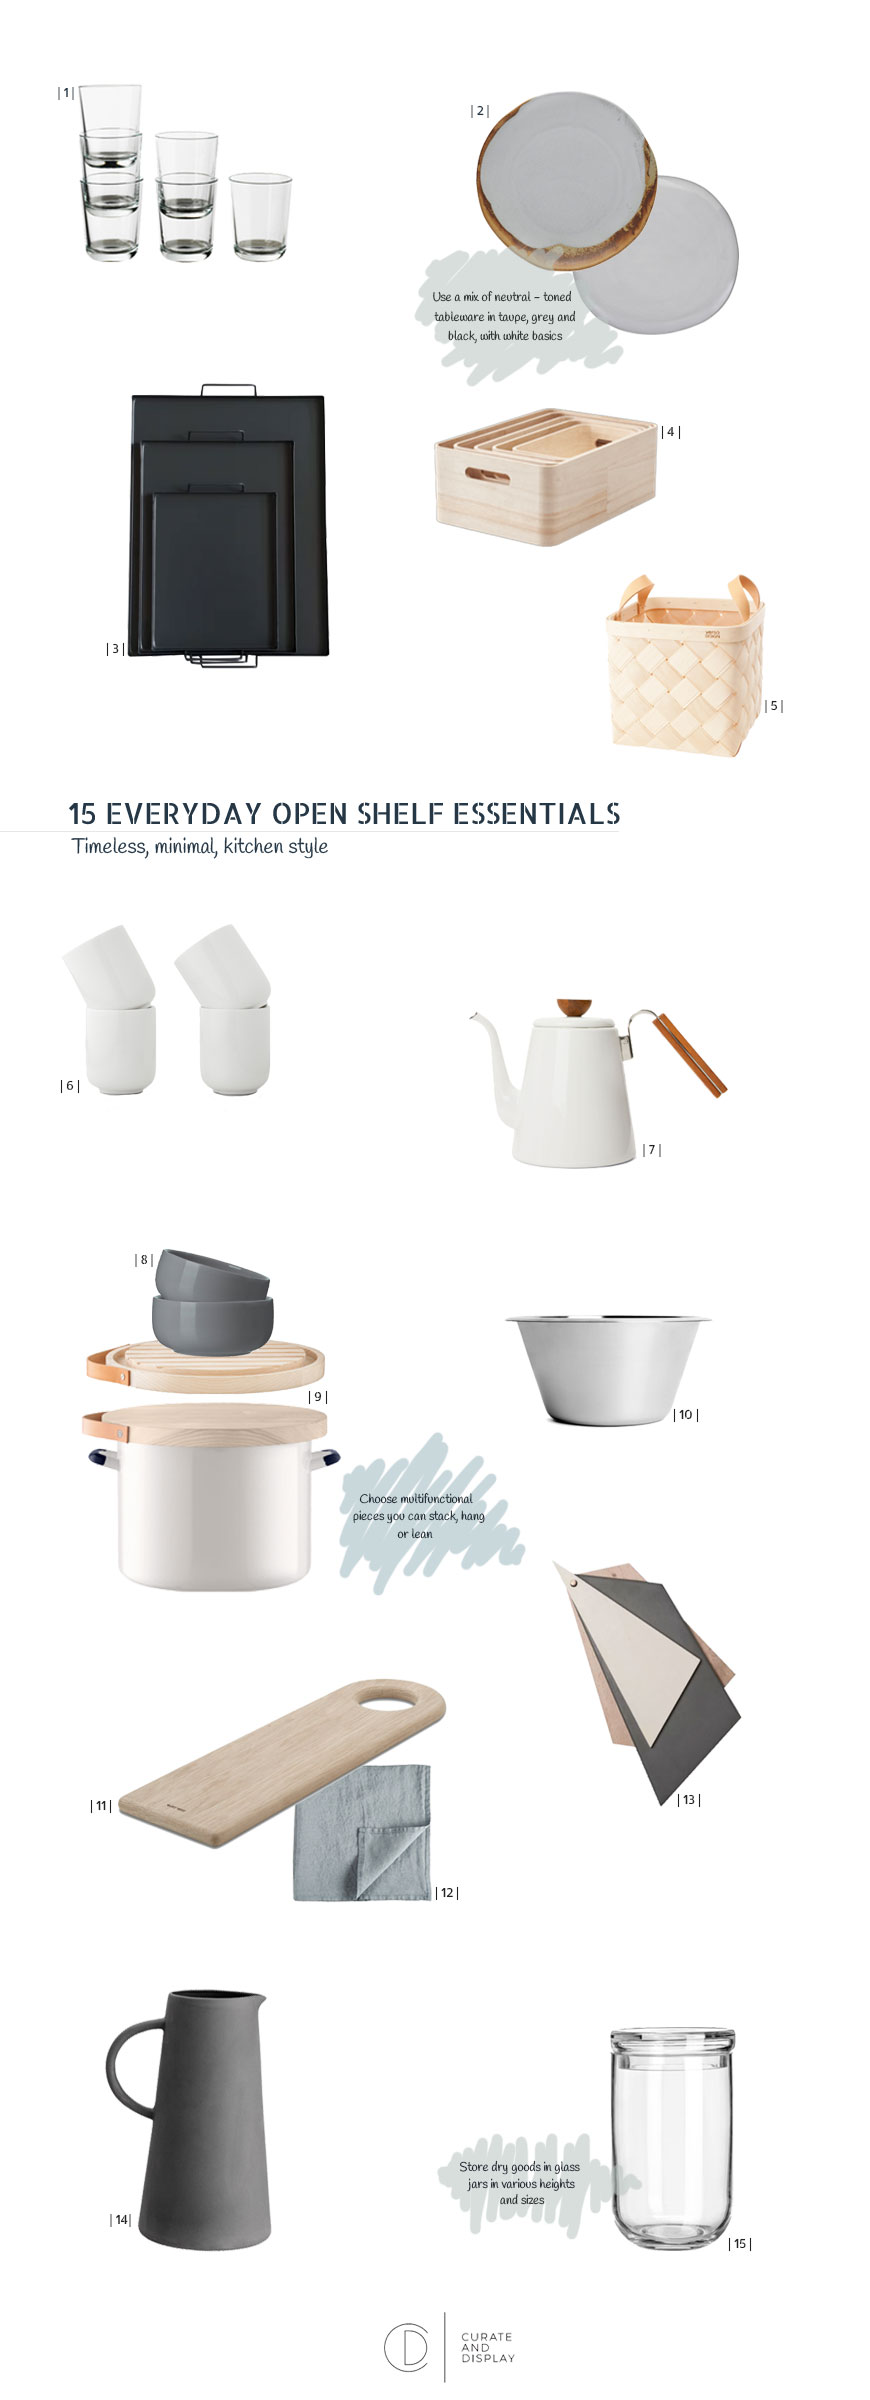 how to style open shelves, how to style wire shelves, kitchen accessories, New Nordic kitchen,  monochrome kitchen accessories